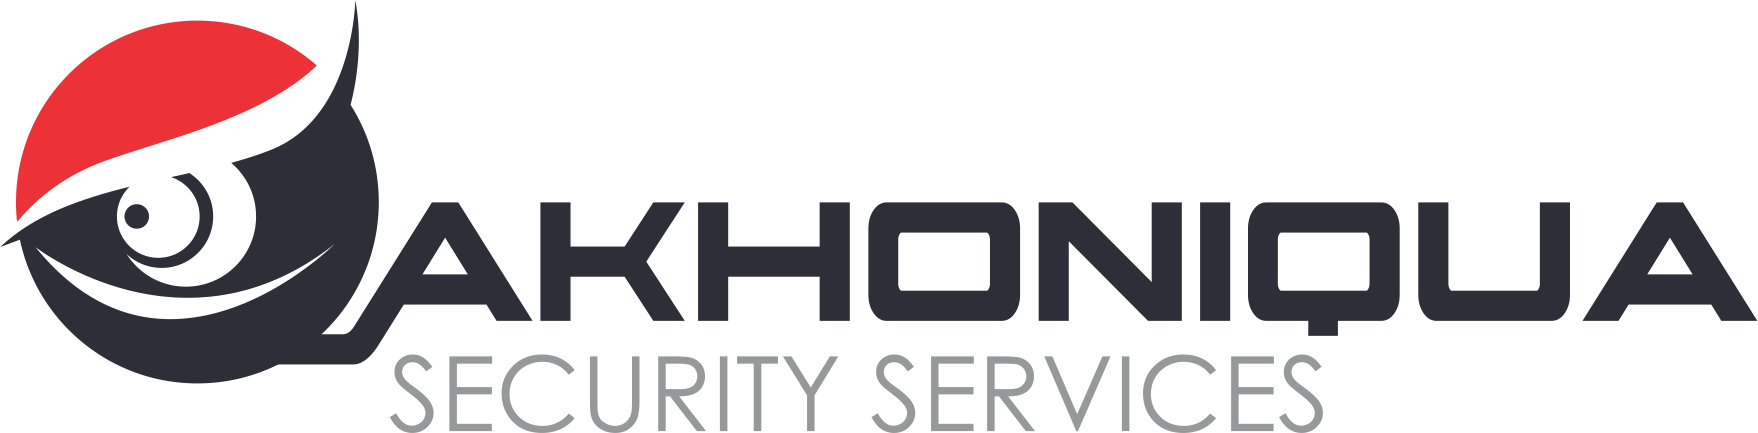 Akhoniqua Security Services